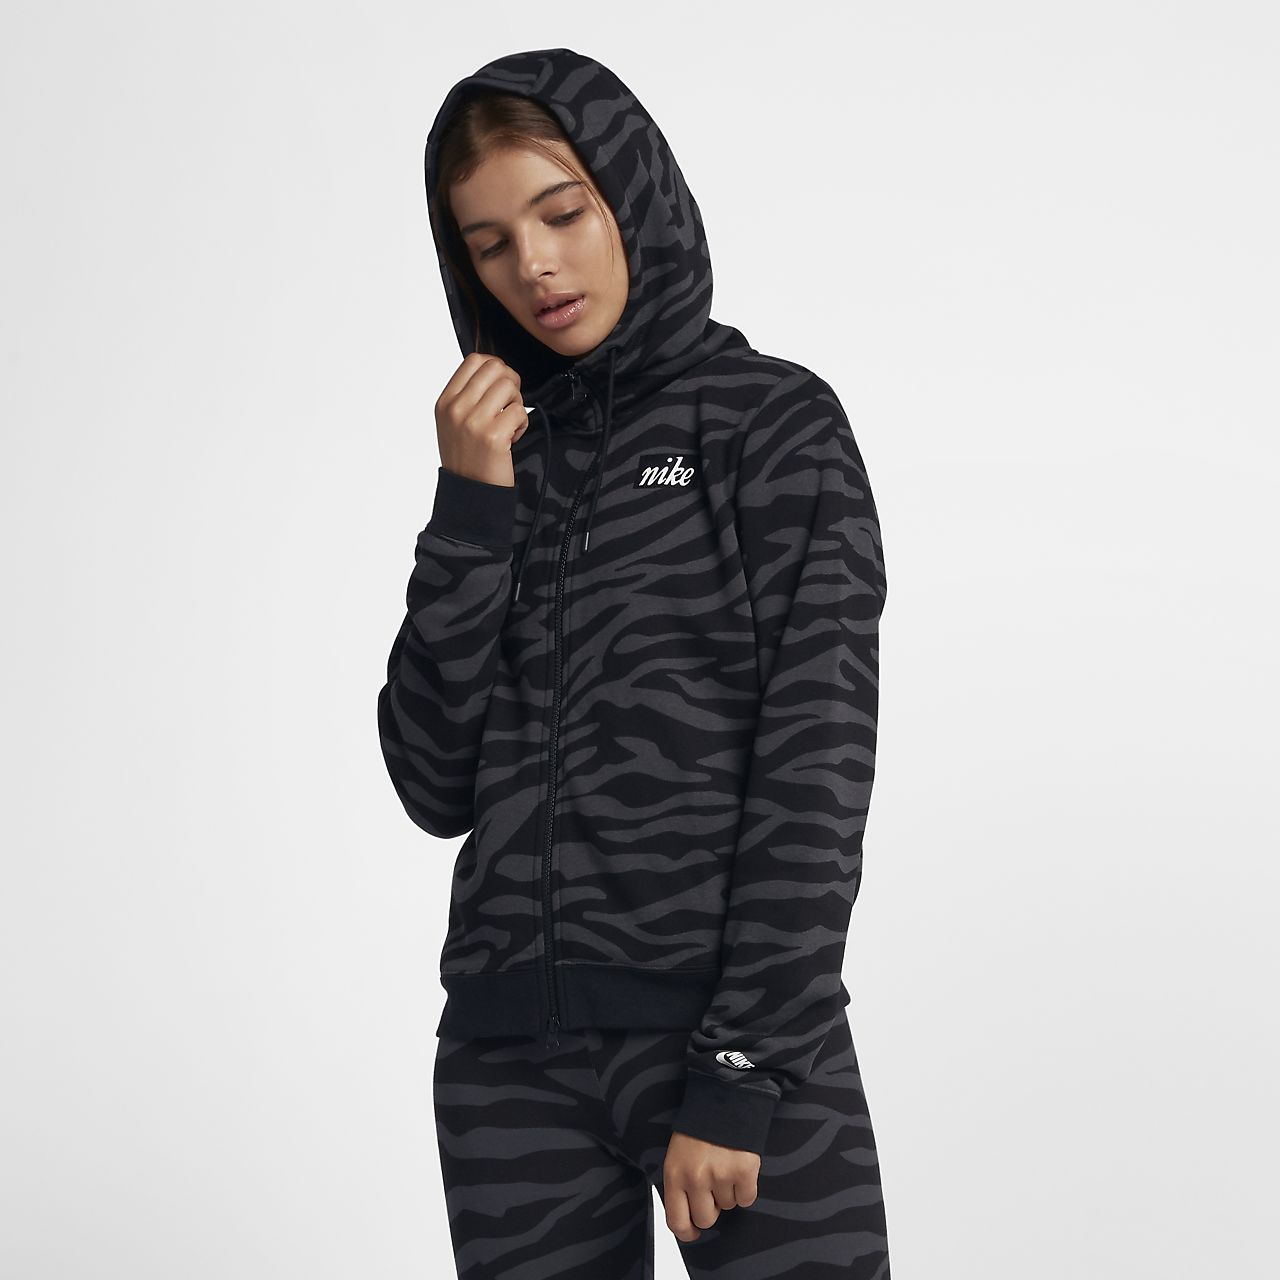 Nike Sportswear Women's Full-Zip Animal Hoodie